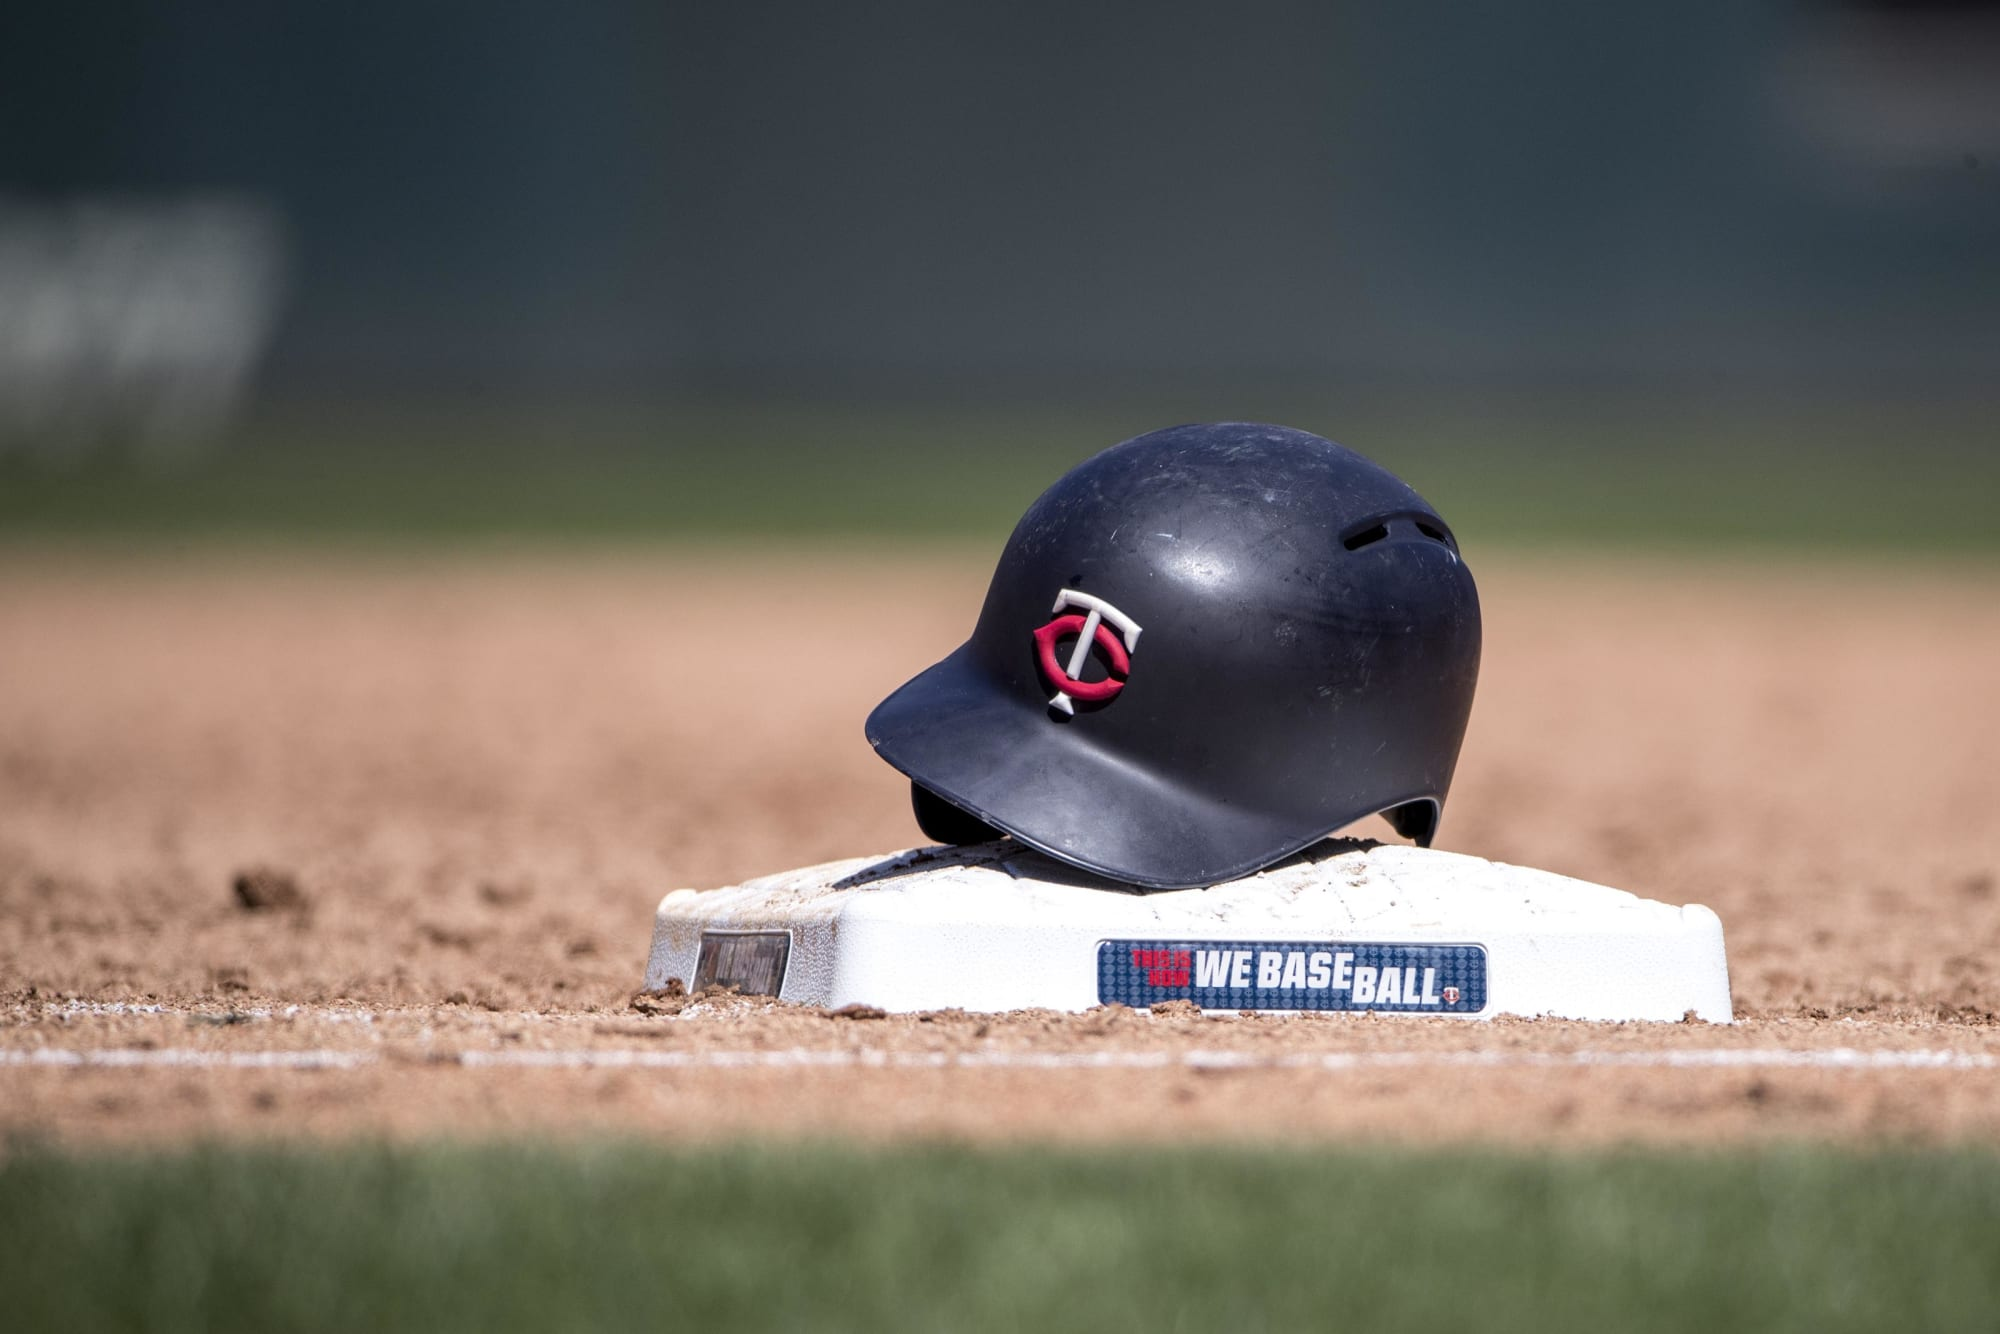 Twins-Angels game postponed due to positive COVID-19 test